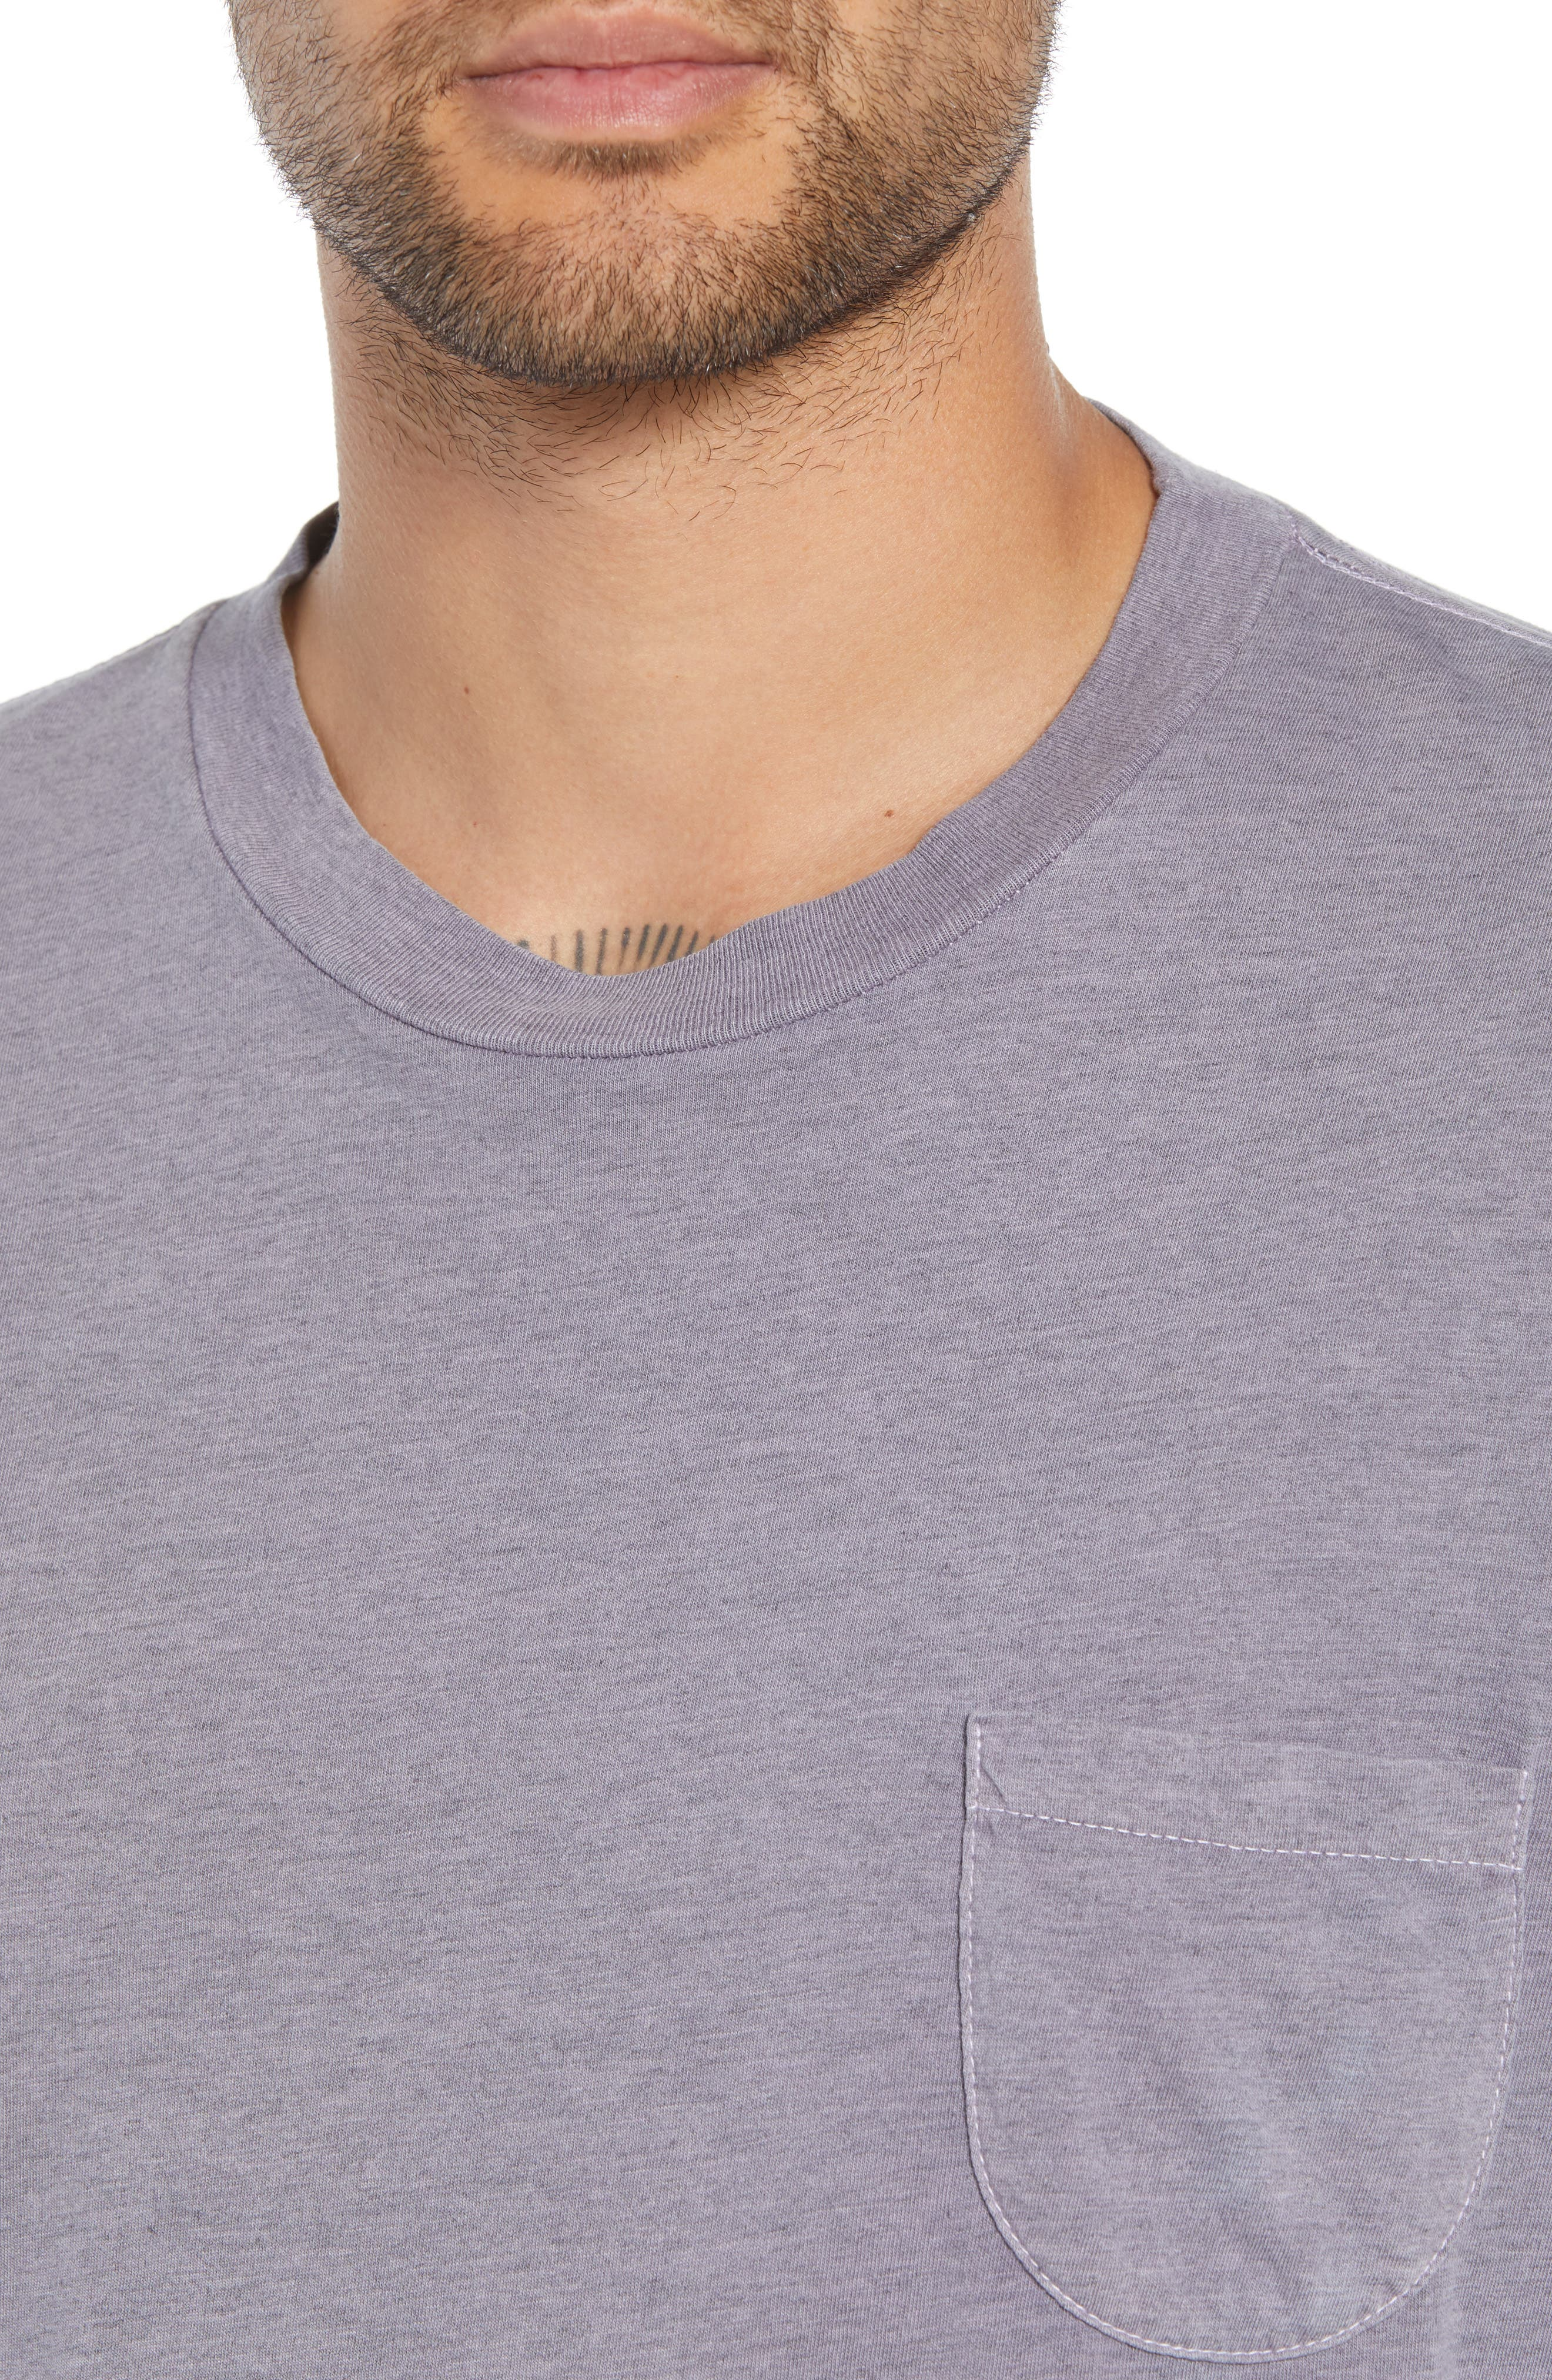 Kojak Pocket T-Shirt,                             Alternate thumbnail 4, color,                             PURPLE ASH